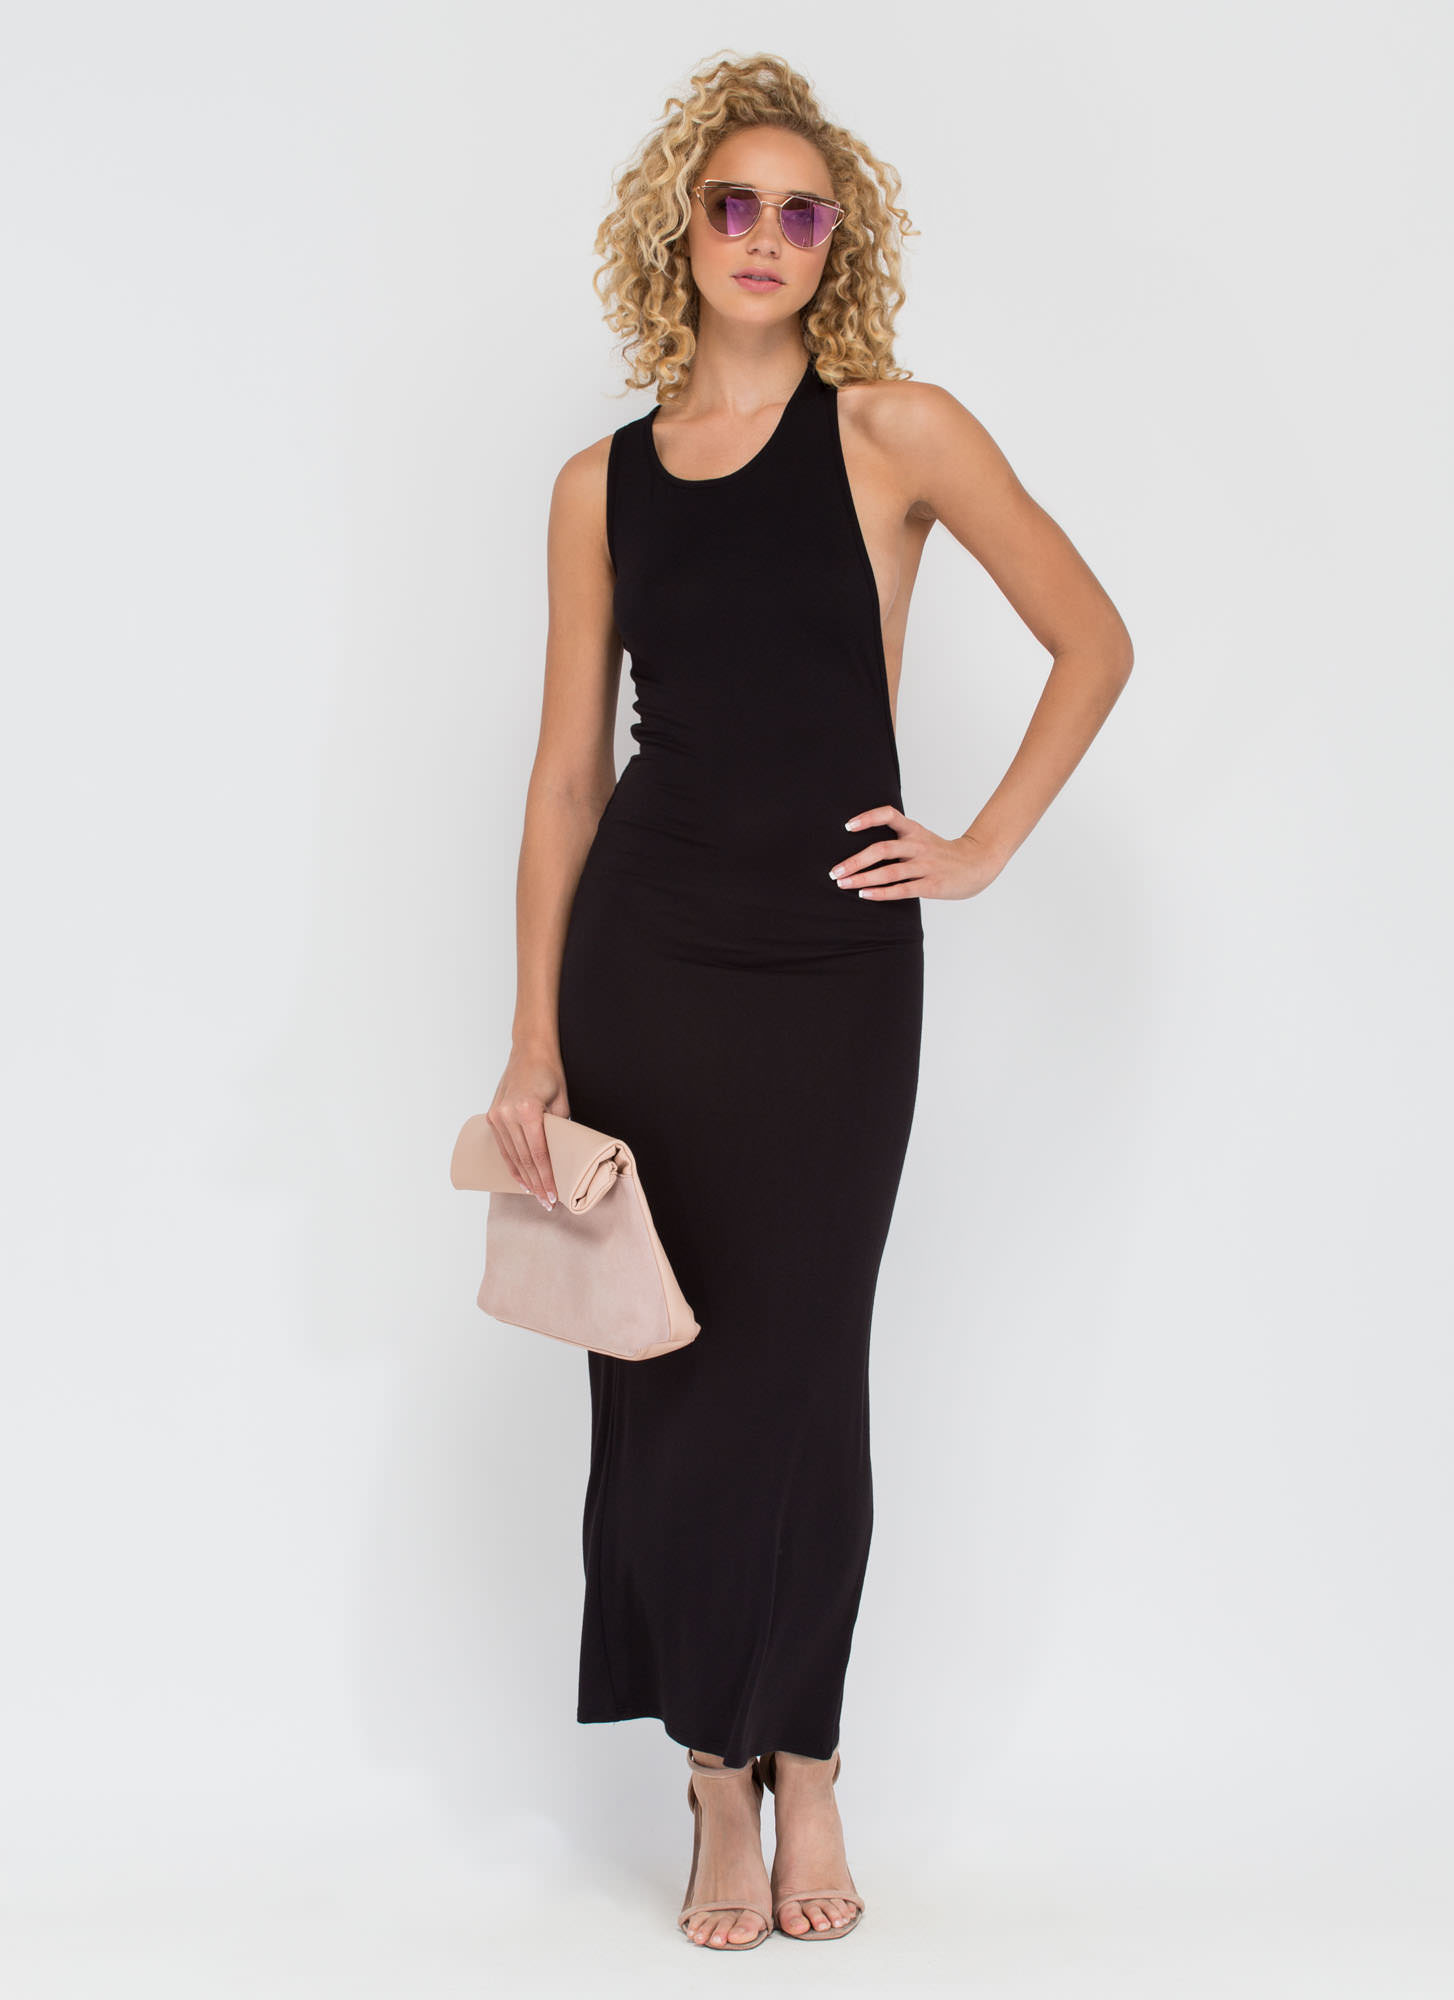 Go Halfsies Open Back Maxi Dress BLACK (Final Sale)